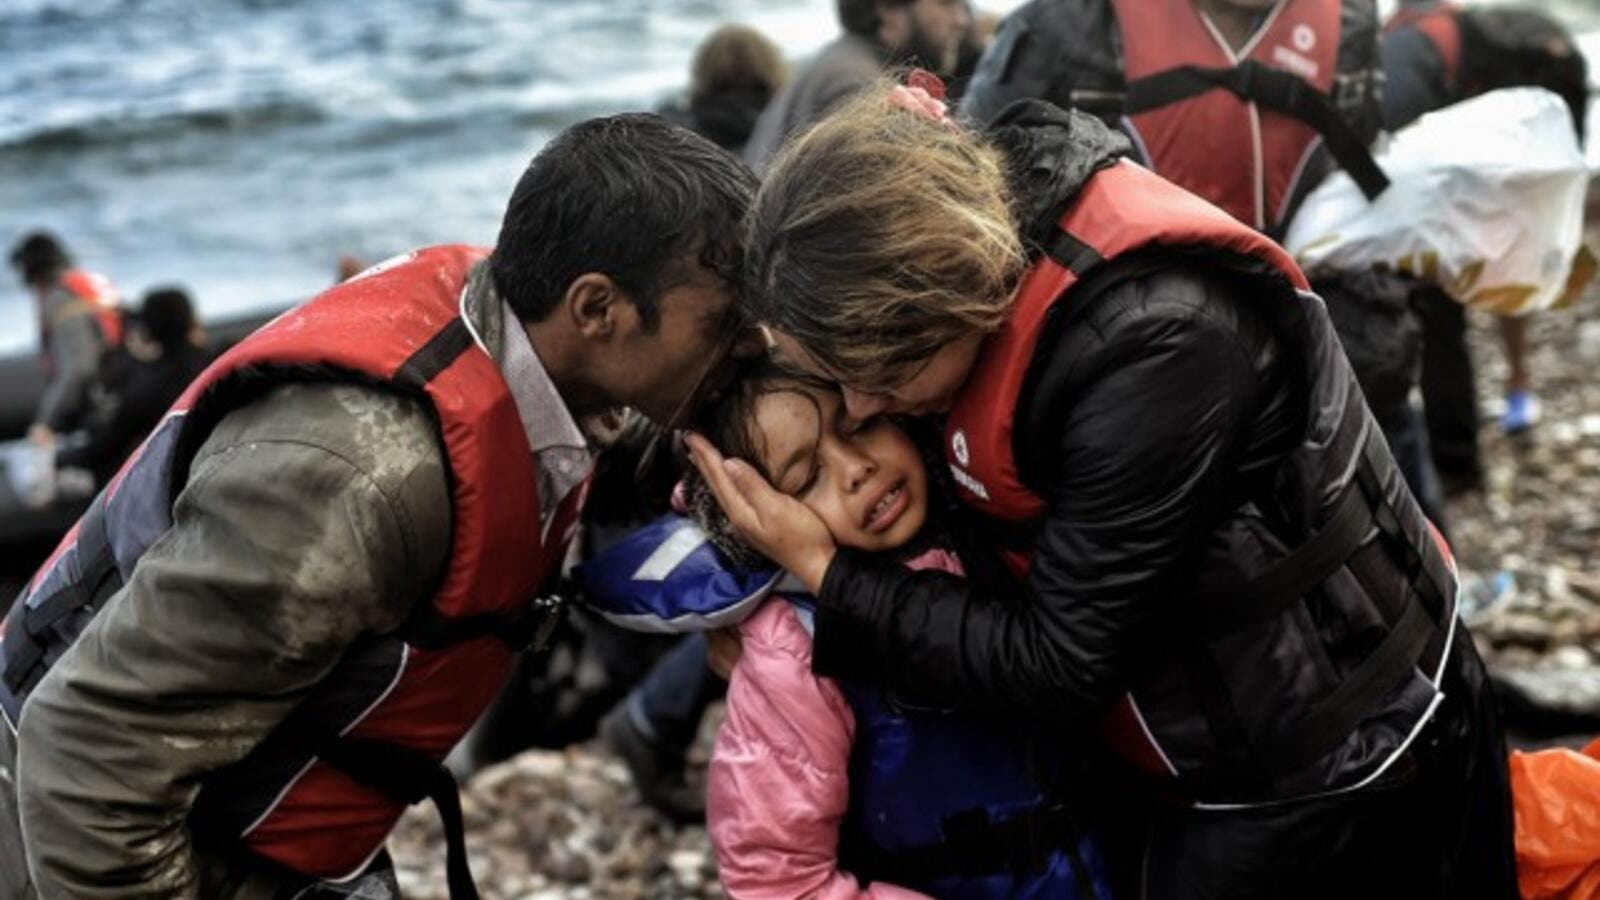 Syrian family becomes emotional after surviving the treacherous crossing between Turkey and Greece. (AFP/File)